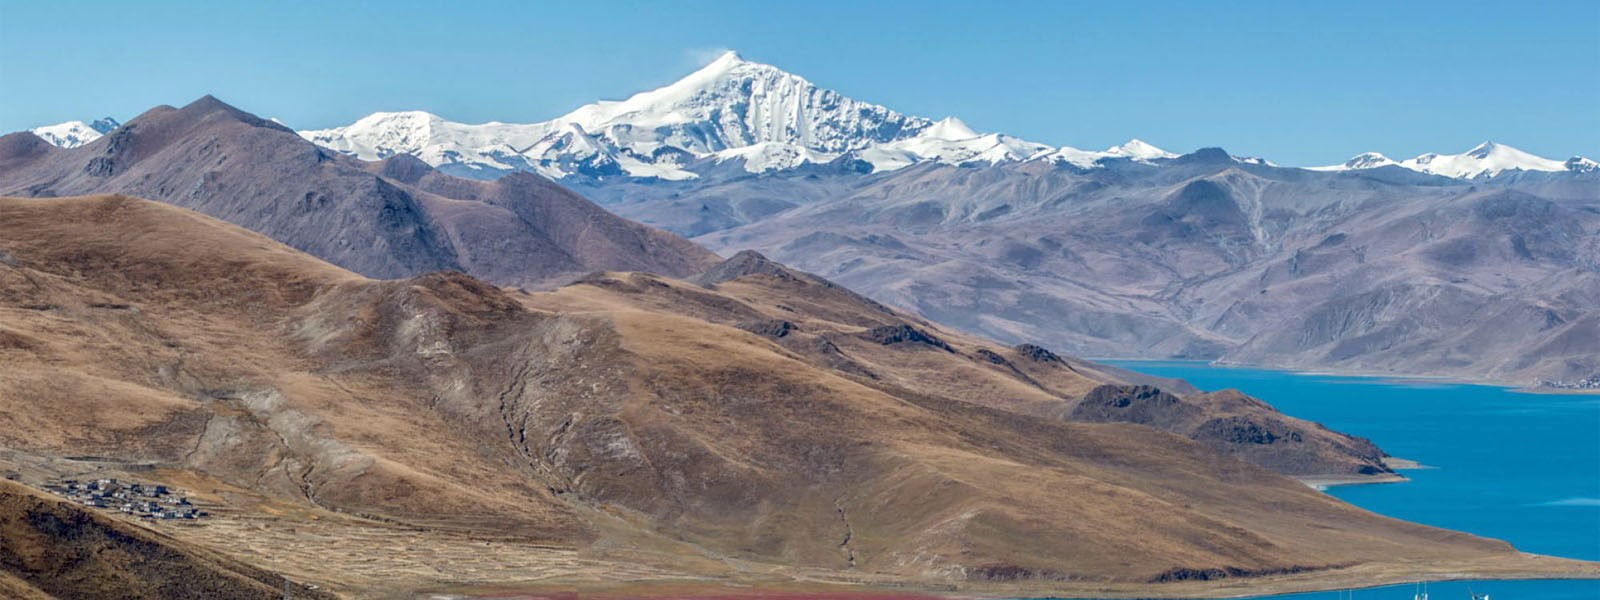 Ganden and Samye Monastery trekking with Yamdrok Lake